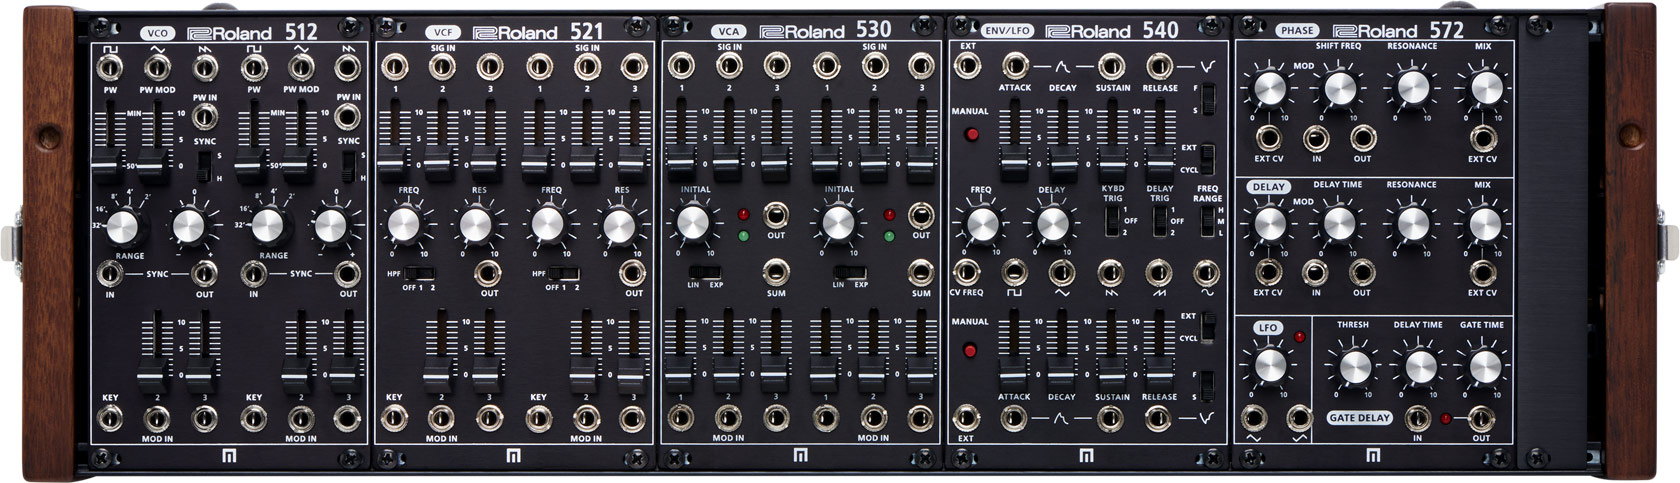 roland-system-500-top